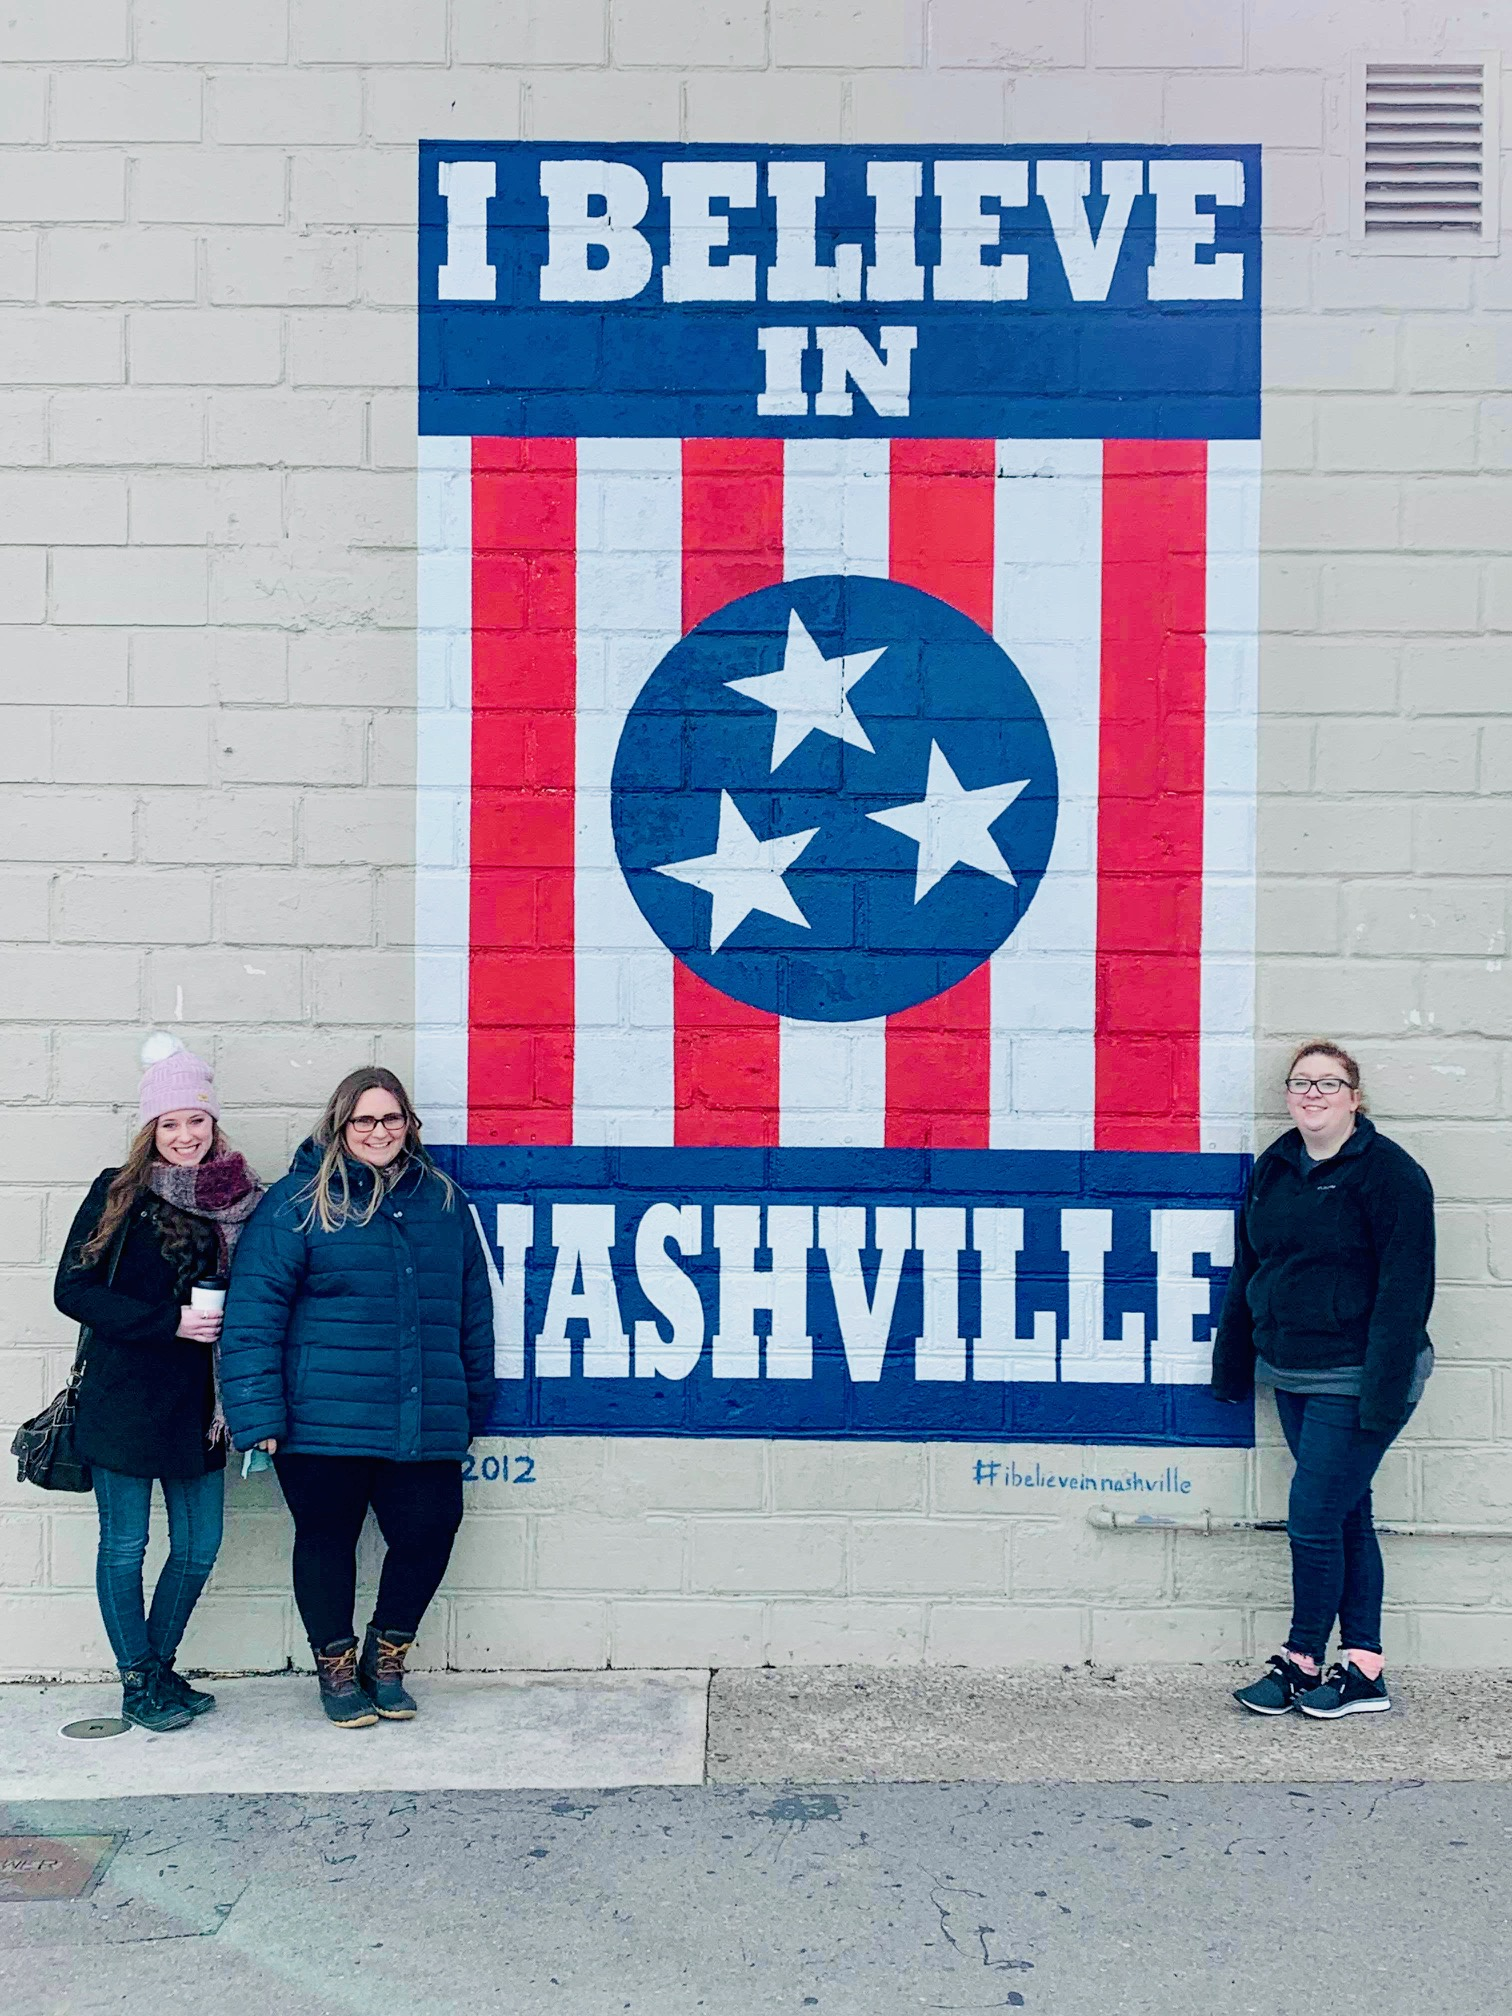 I Believe in Nashville: Nashville Walls